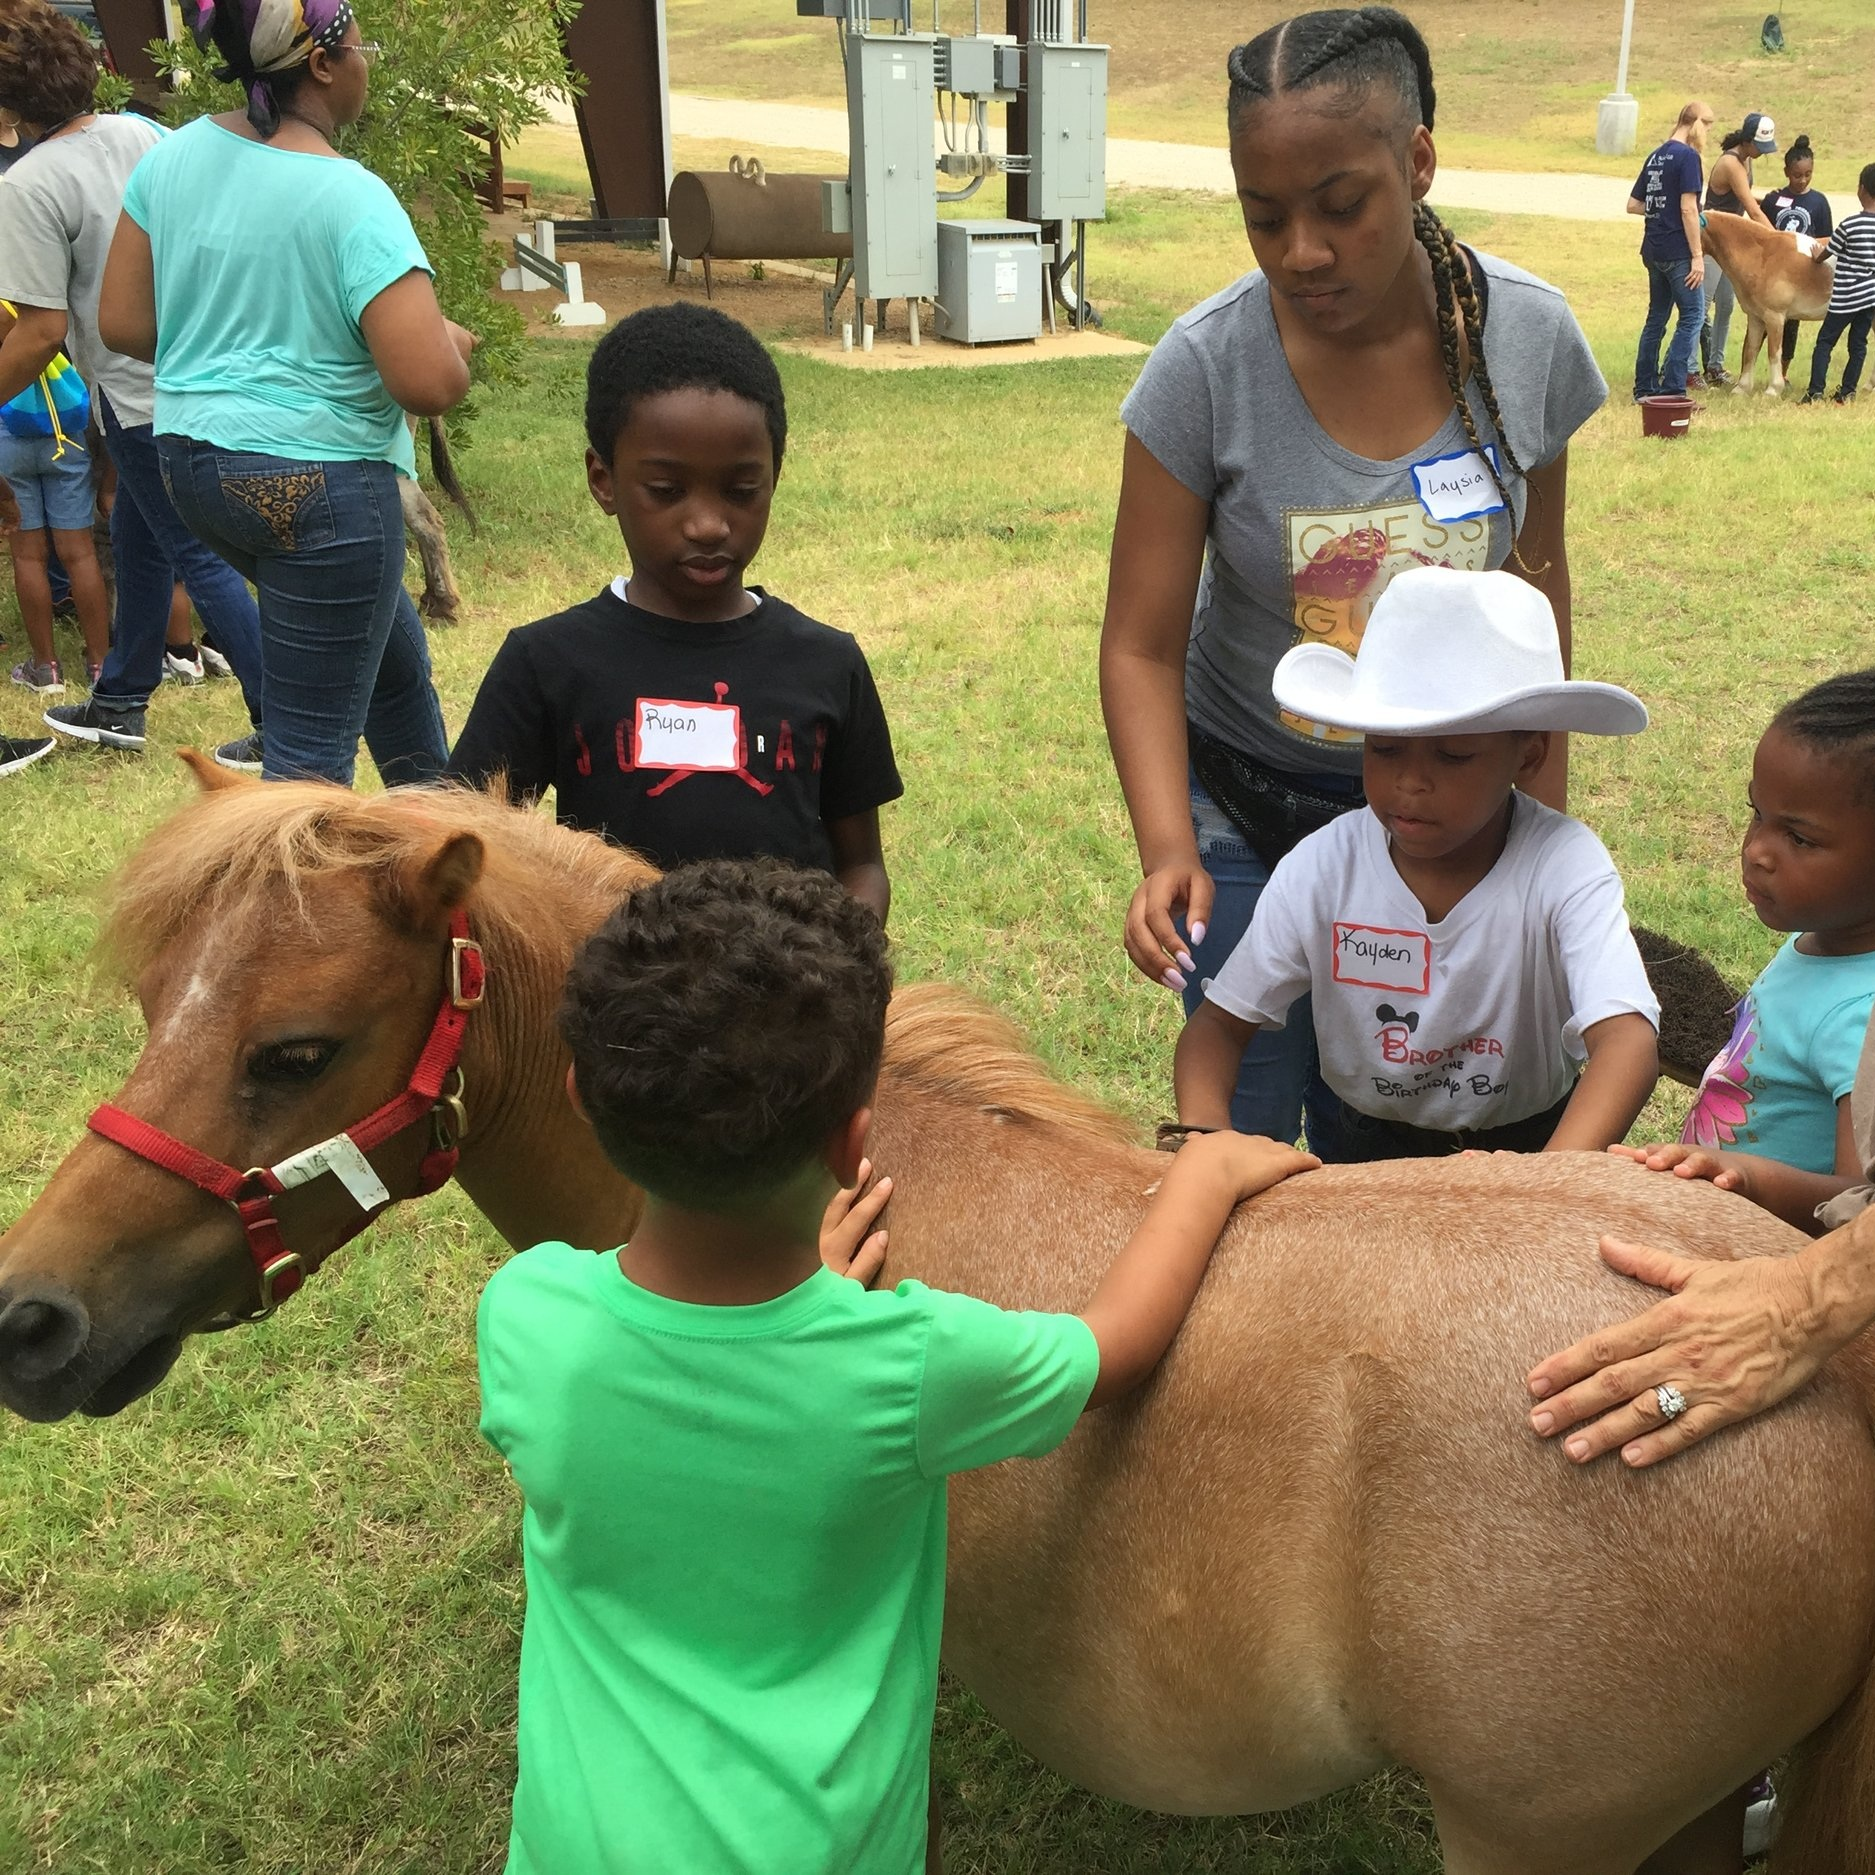 EQUINE FACILITATED LEARNING